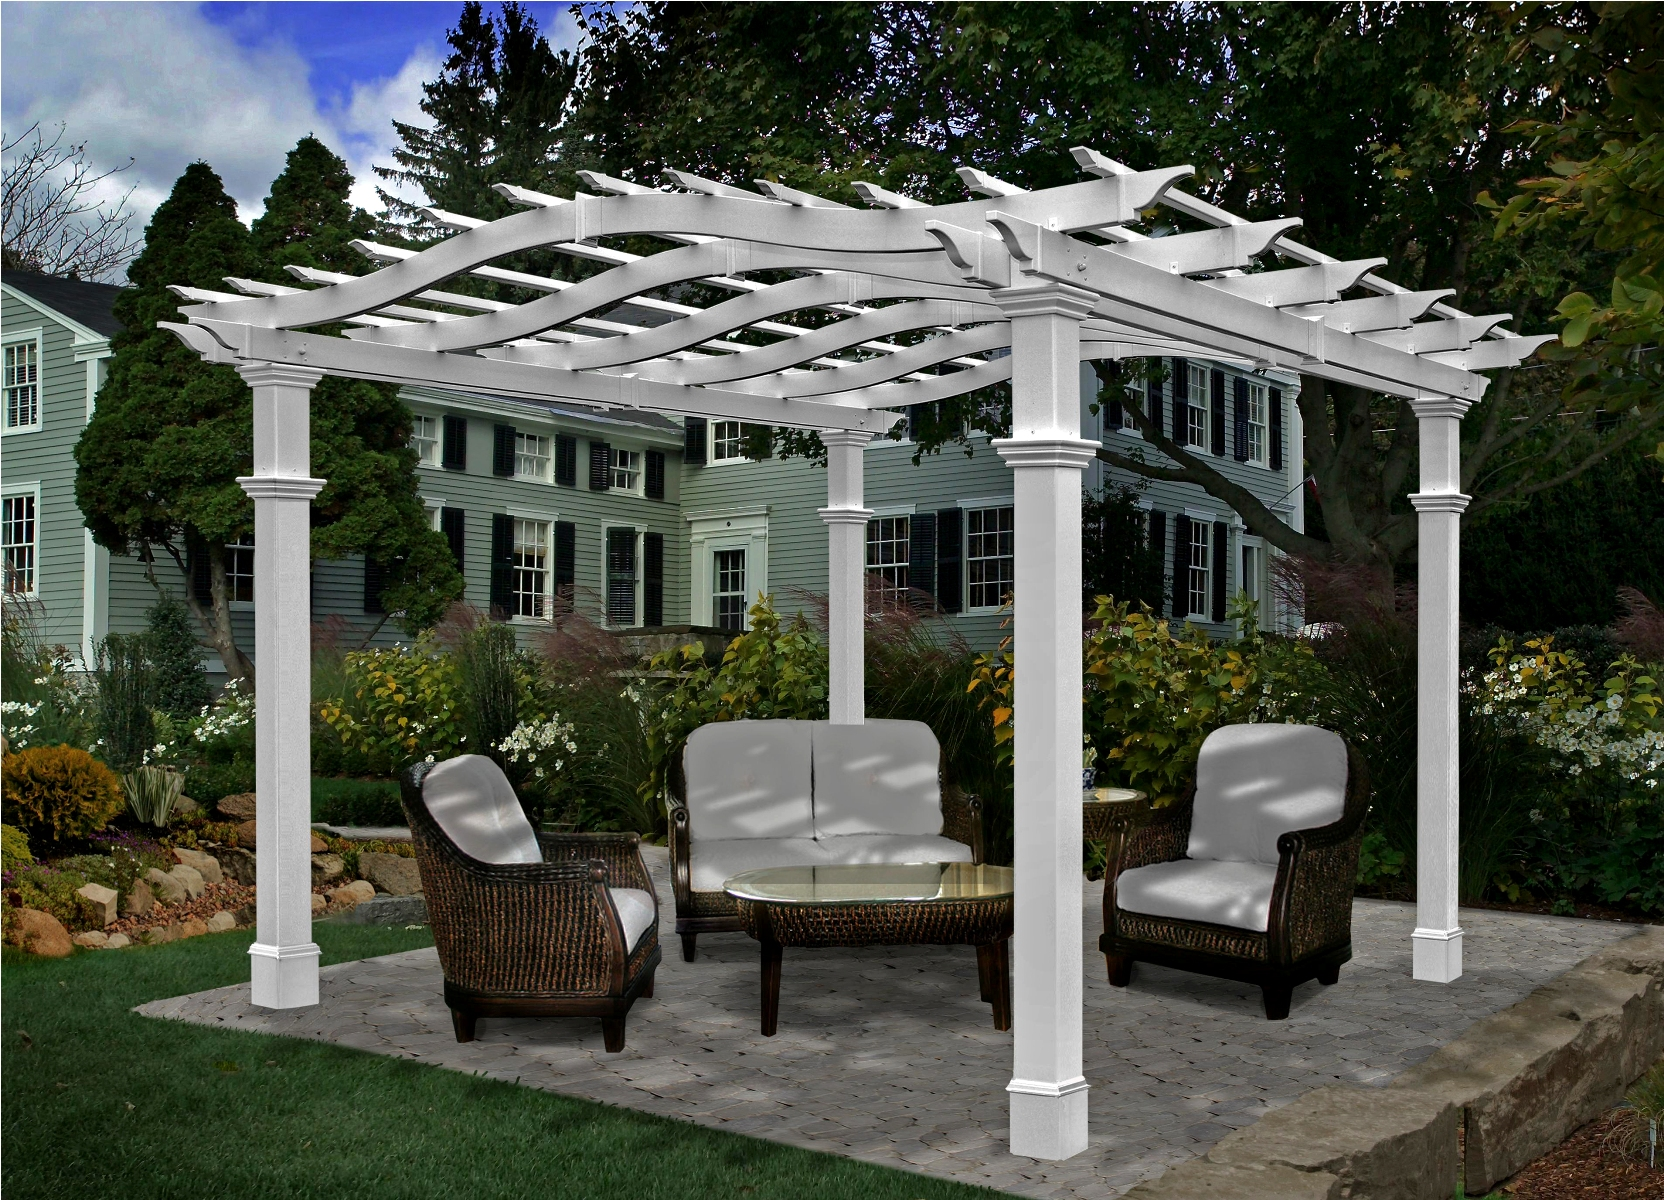 Outdoor lighting design for pergolaoutdoor lighting design for Pergola designs